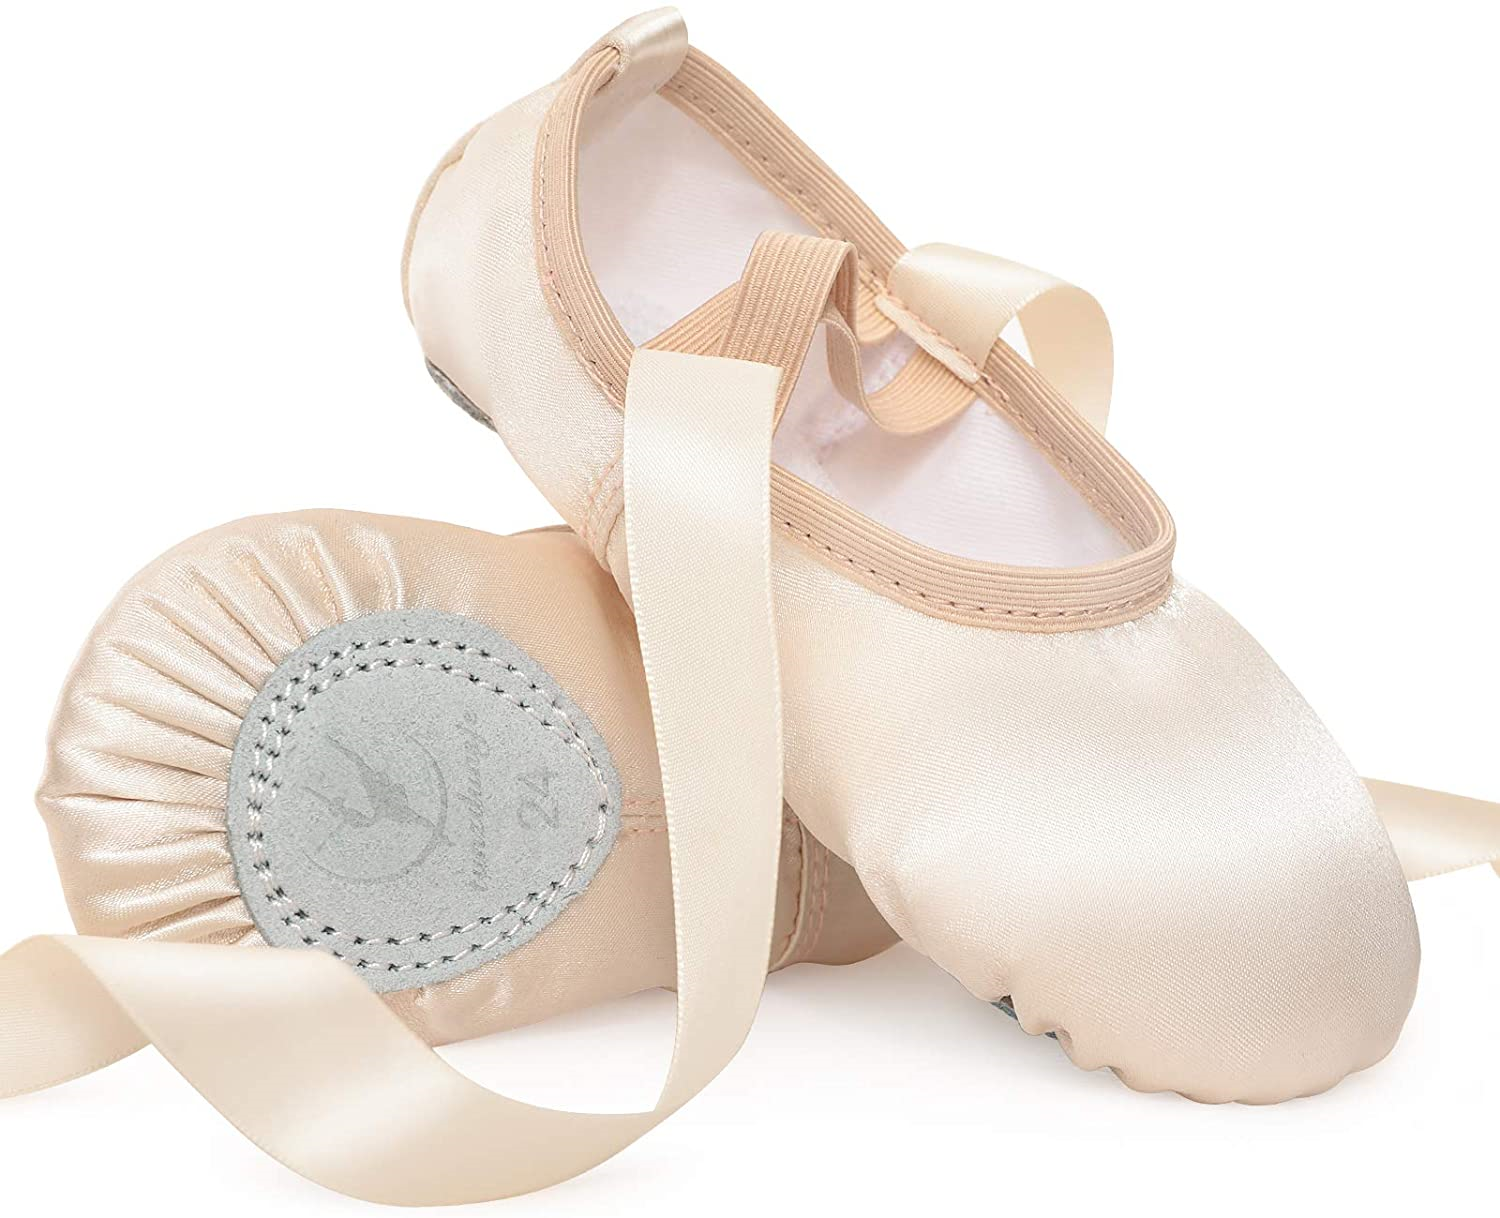 Satin Ballet Shoes Pink Ballet Dance Slippers with Ribbon Ballet Flat Leather